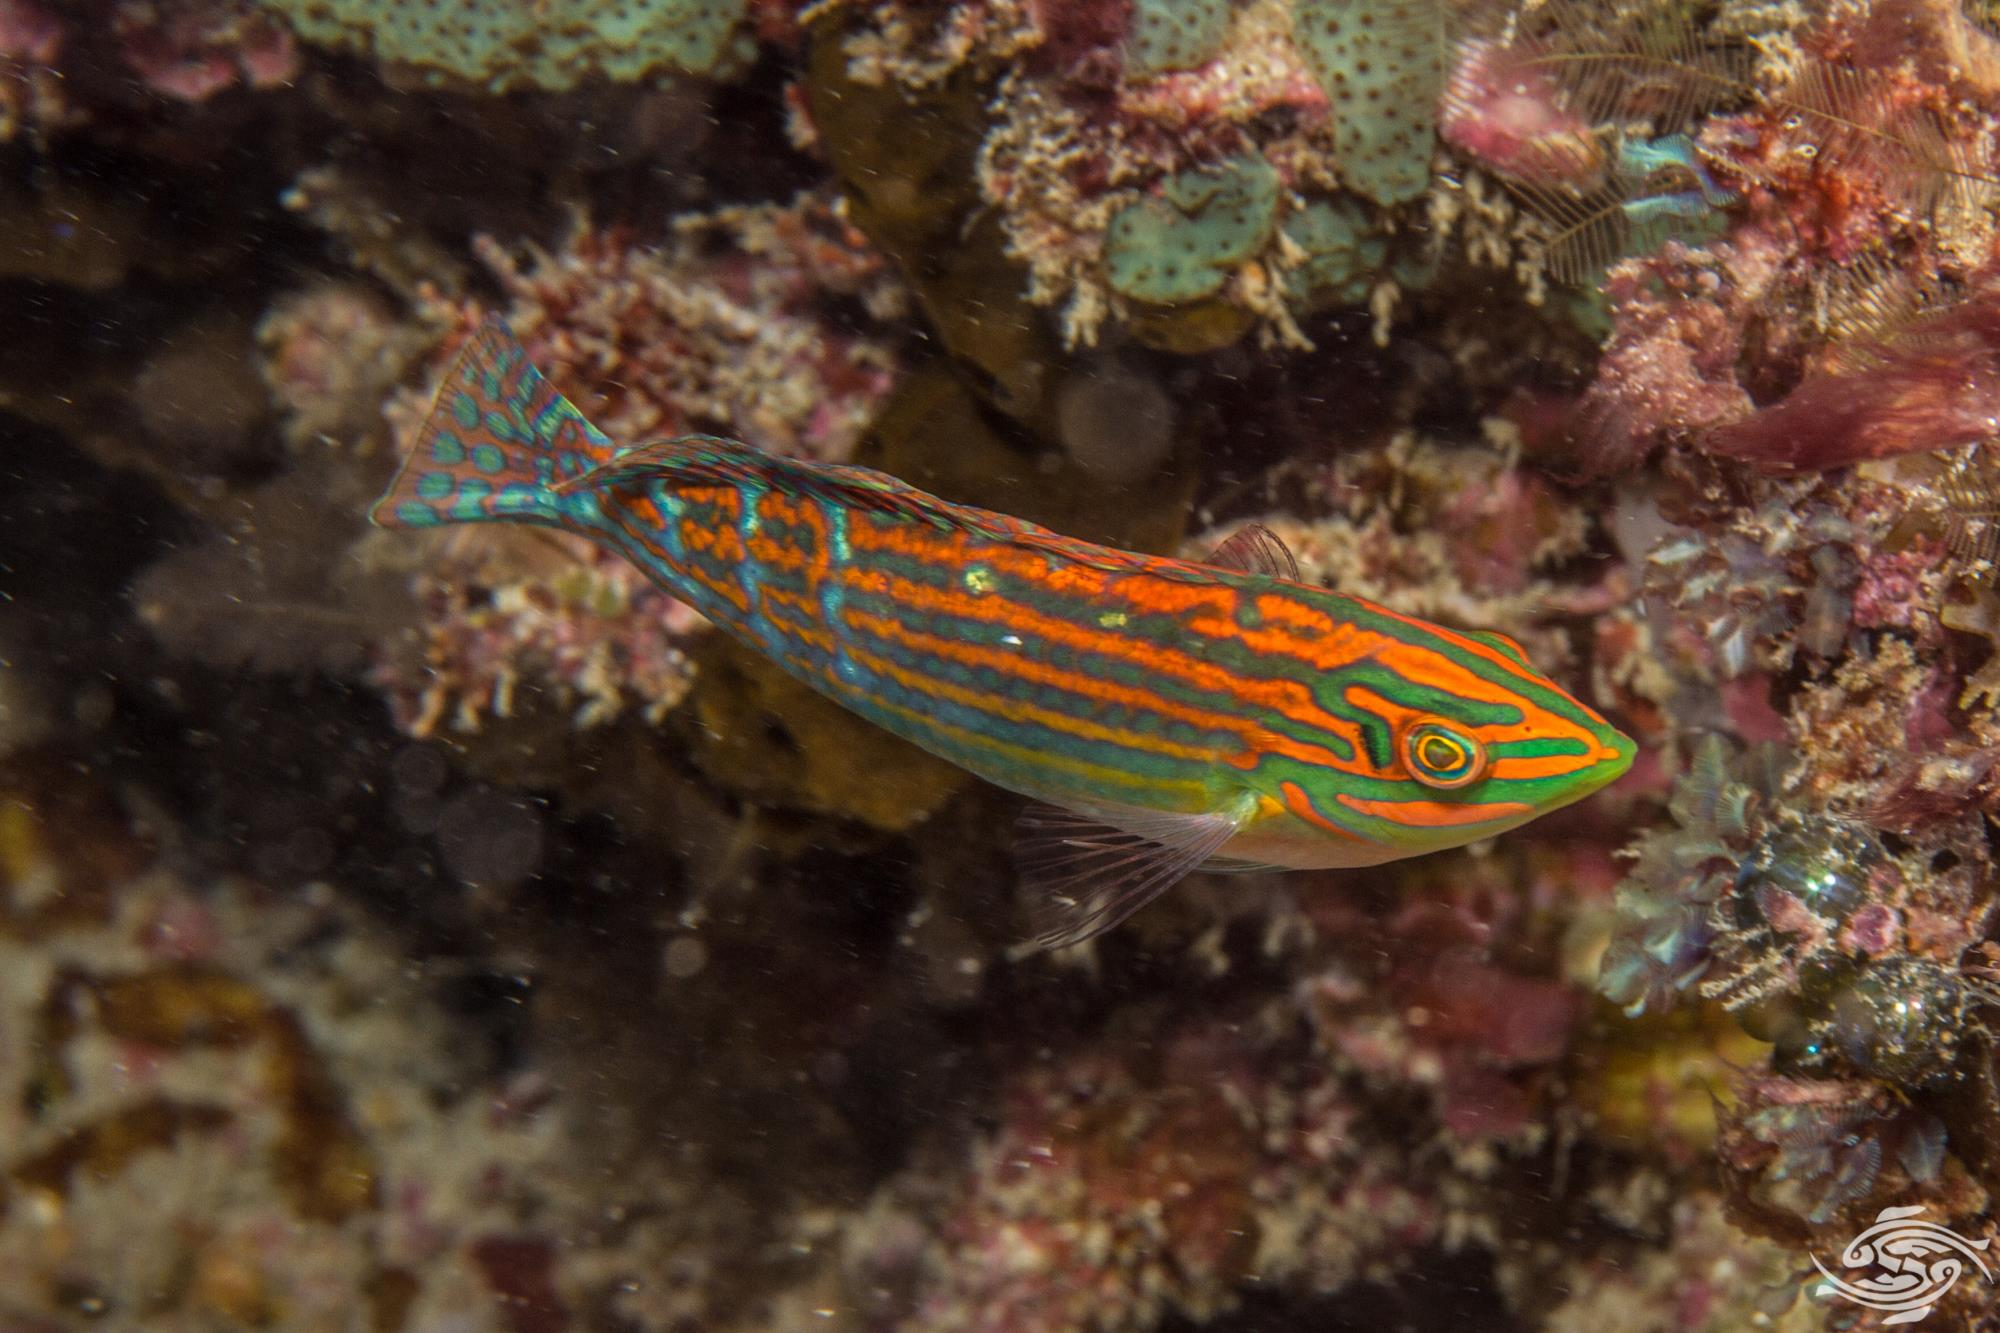 Adorned Wrasse (Halichoeres cosmetus) is also known as the Cosmetic wrasse